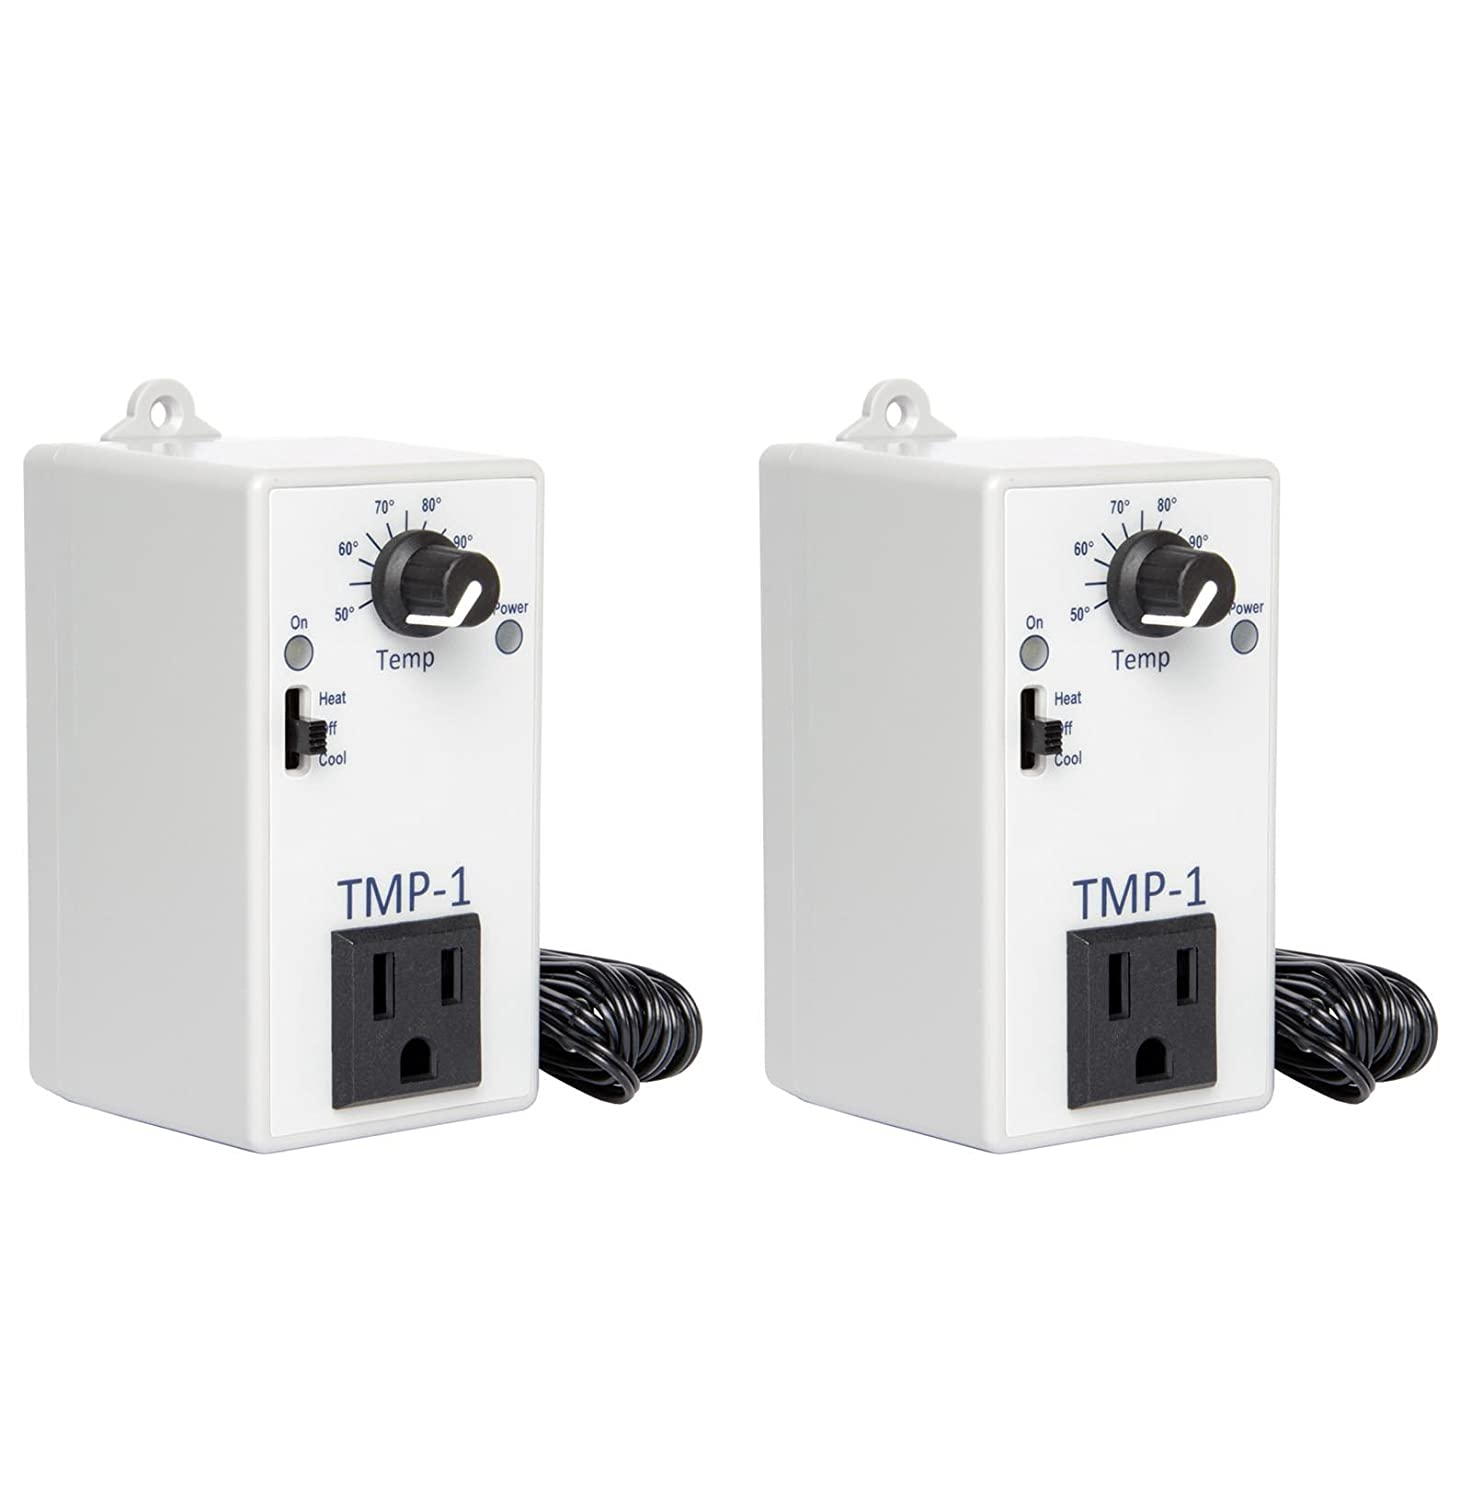 (2) C.A.P. TMP-1 Cooling Hydroponic Garden Thermostat Temperature Controllers